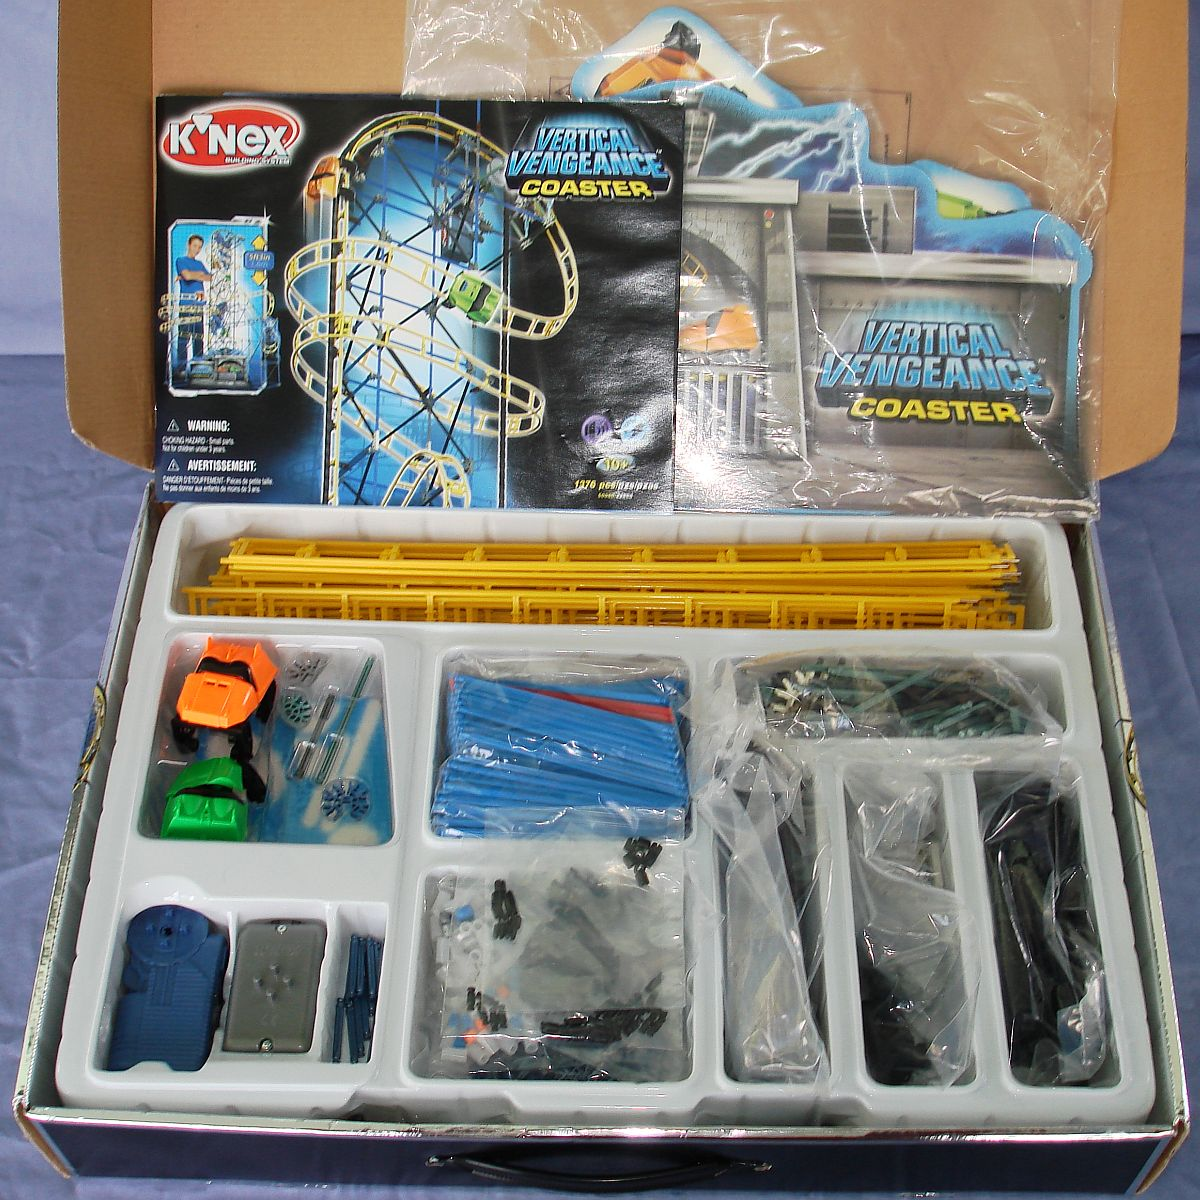 Knex Building System Vertical Vengeance Roller Coaster 1376 Pieces Box Contents